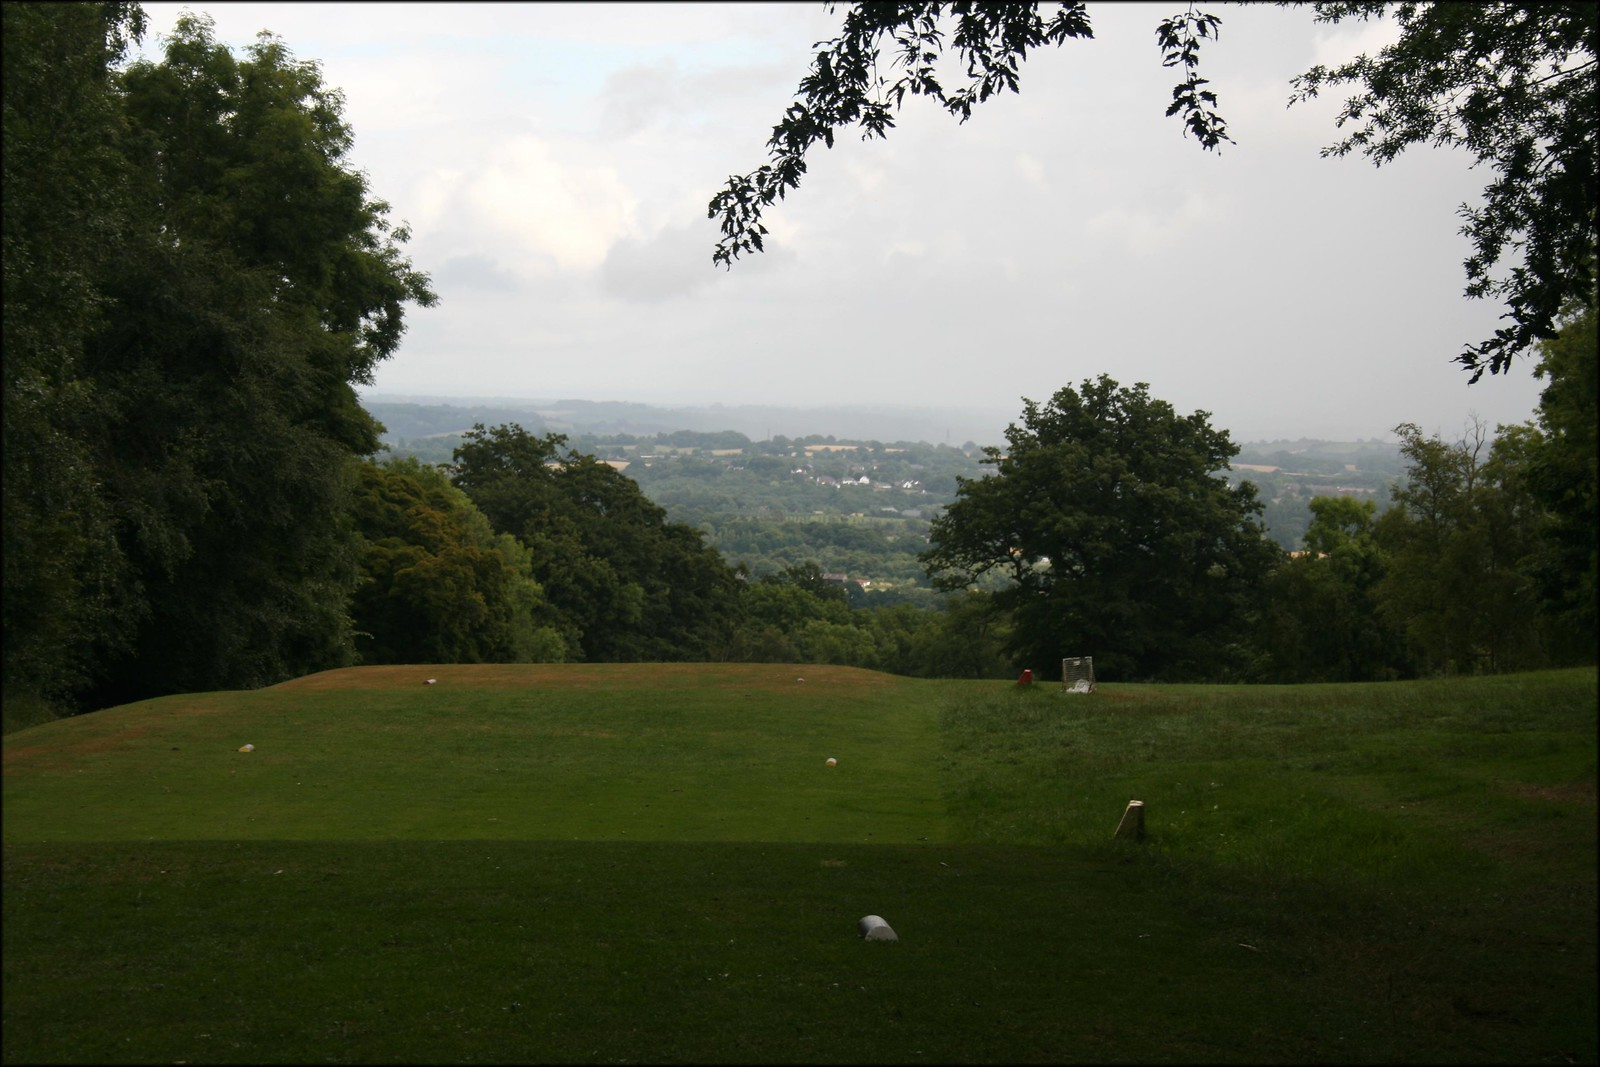 View from the golf course in Beauport Park, near Hastings